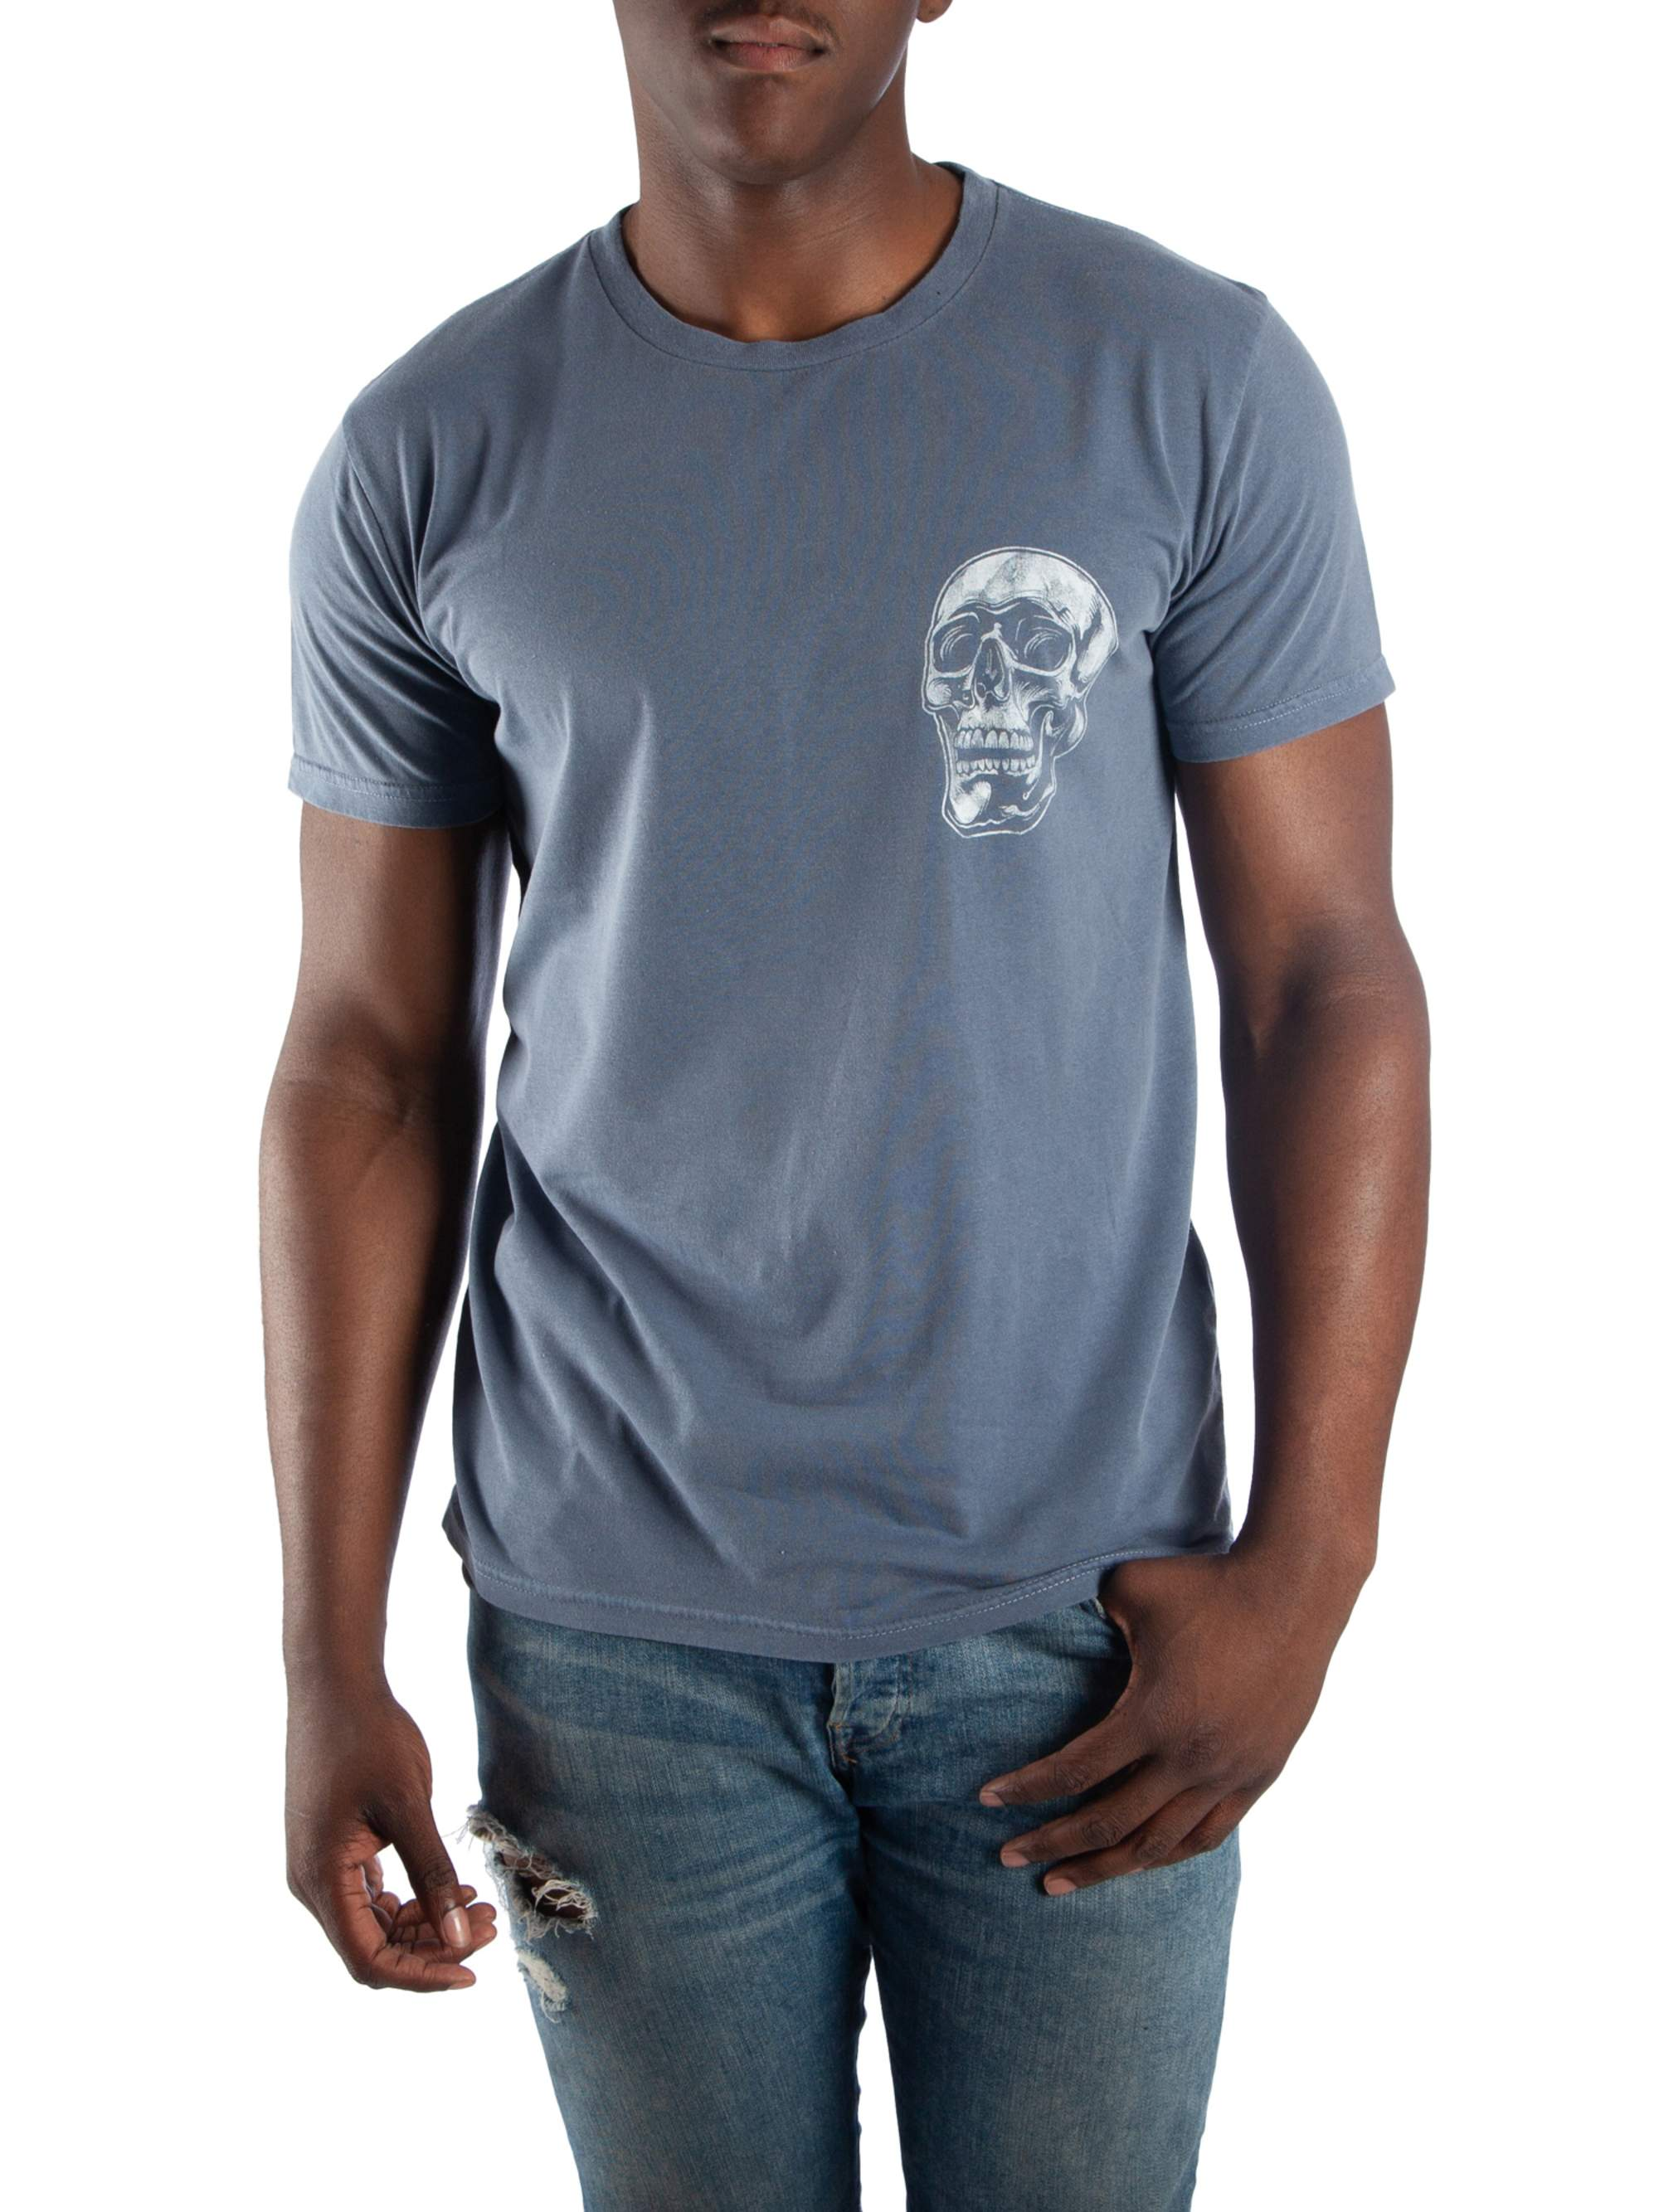 Men's Vintage Charcoal Propel Racing Skull with Distressed Front and Back Print